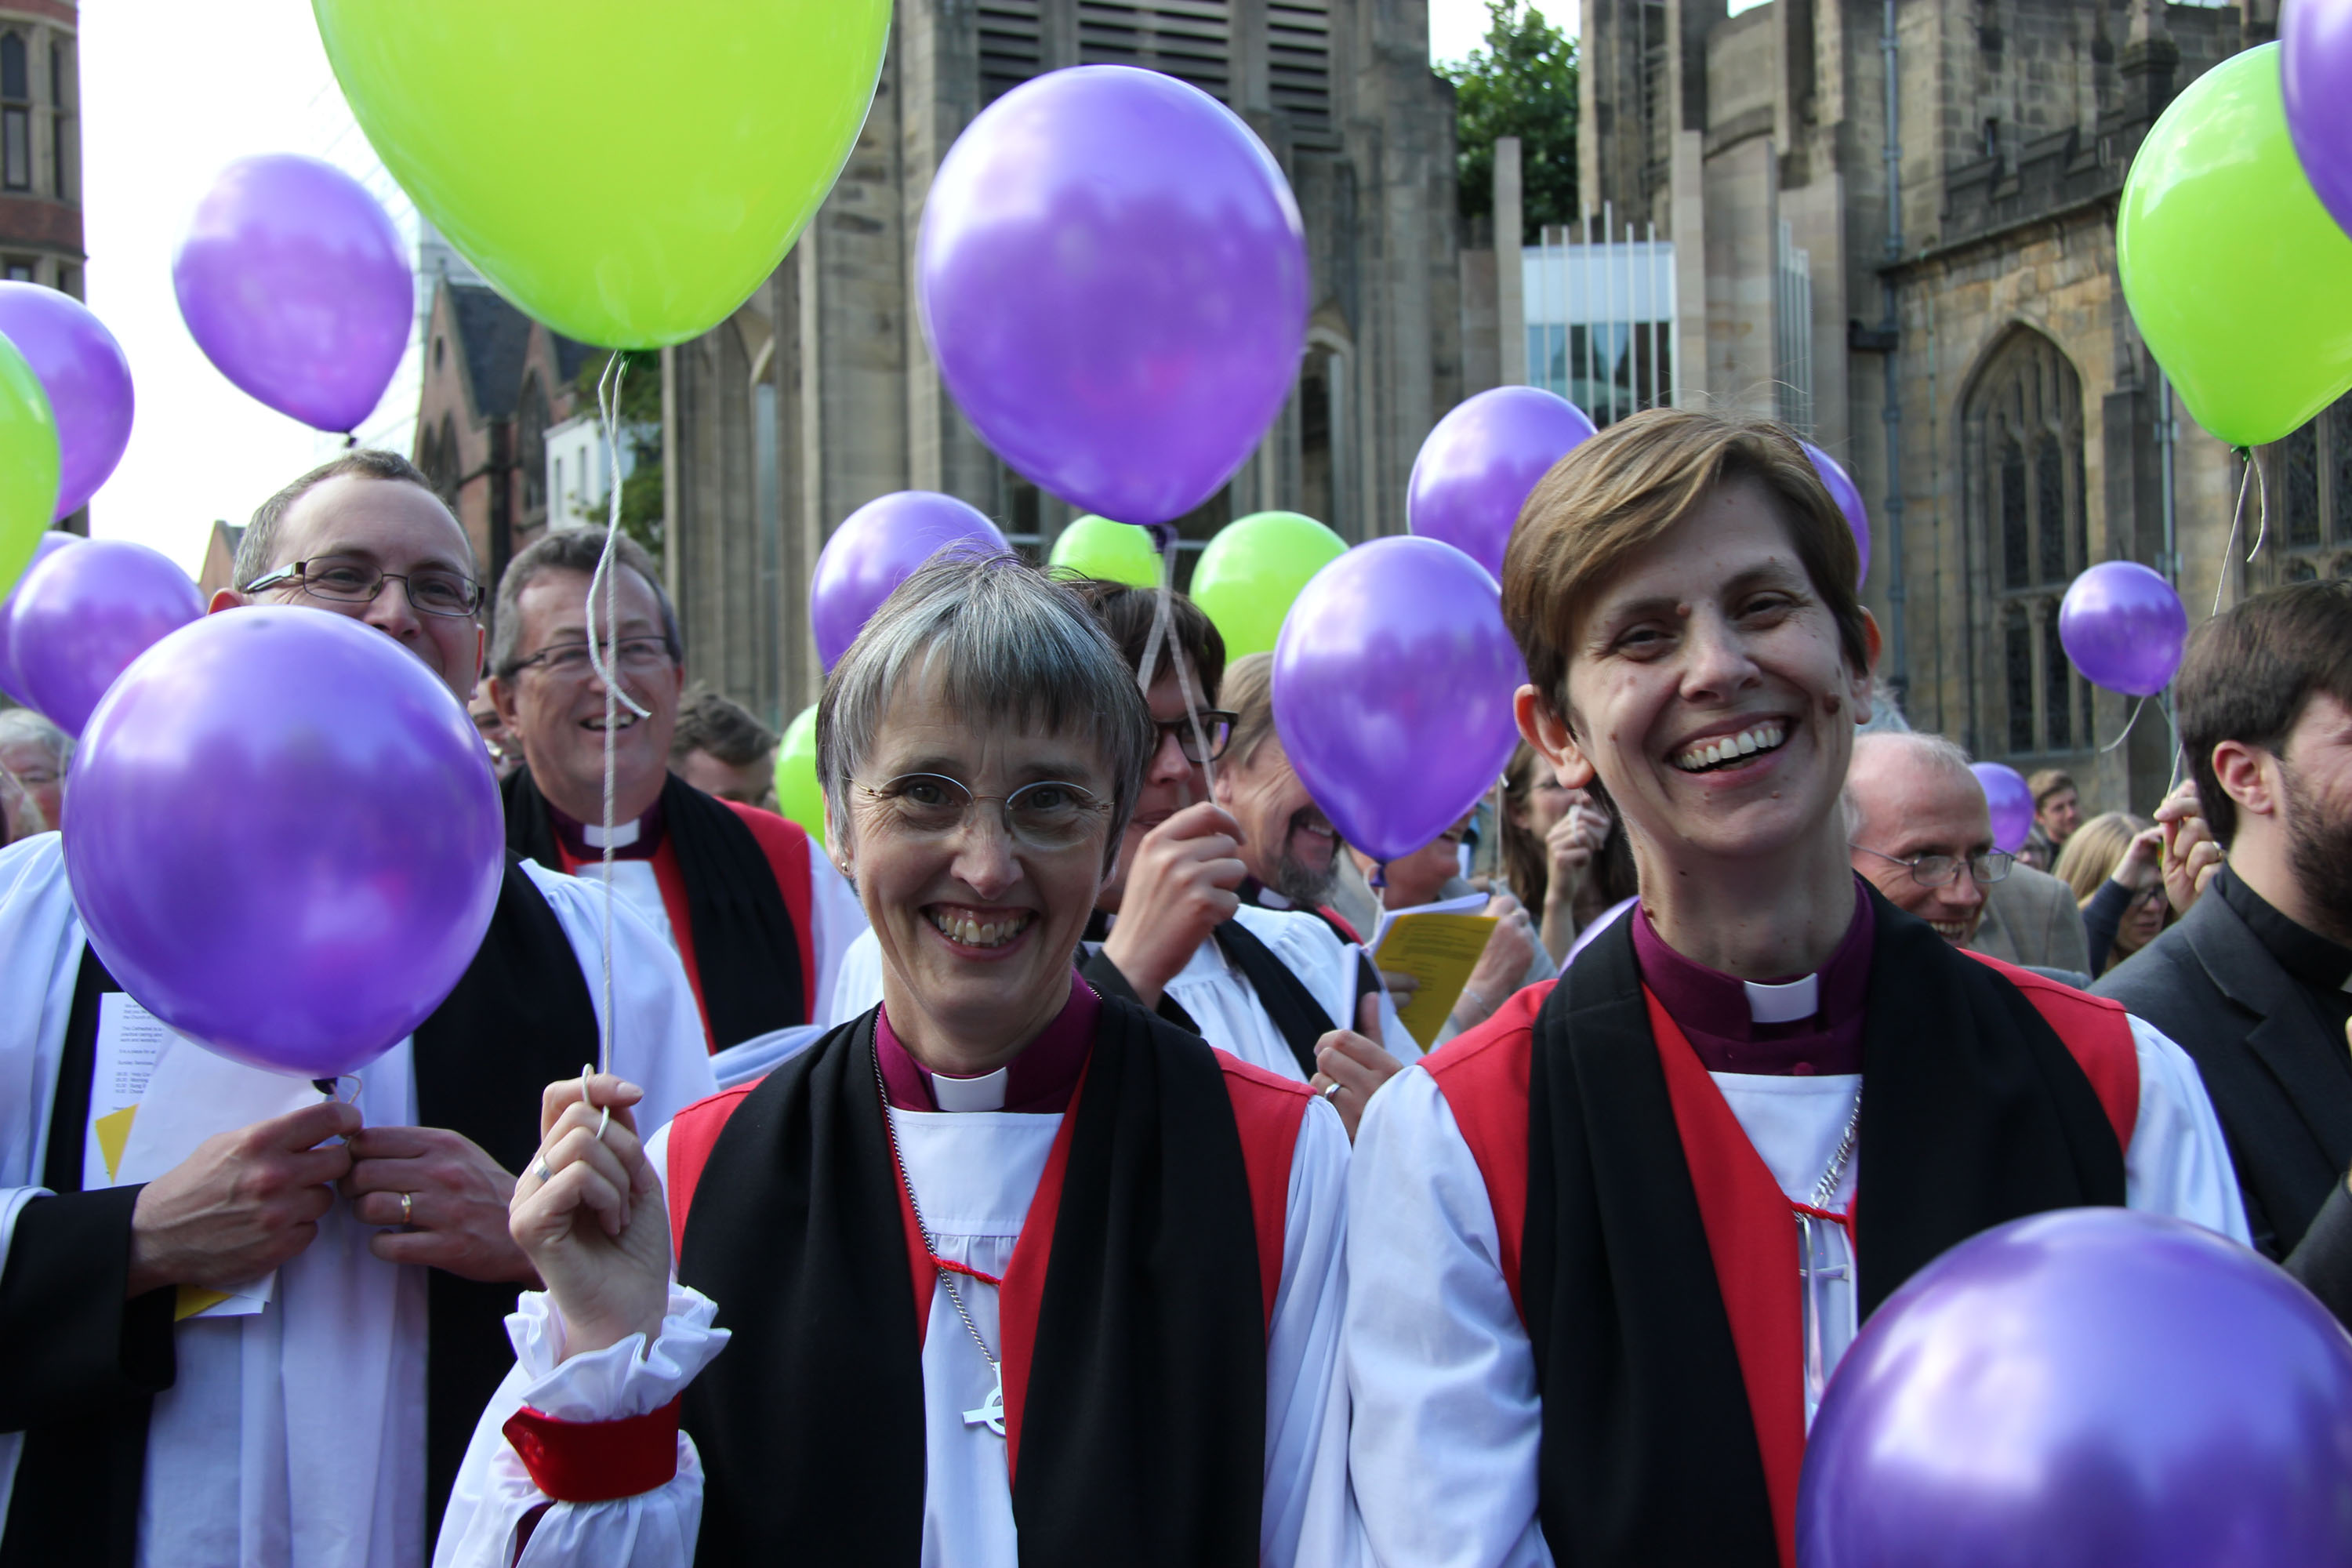 Bishop Alison White and Bishop Libby Lane with balloons for the start of the Crossroads Mission in Sheffield